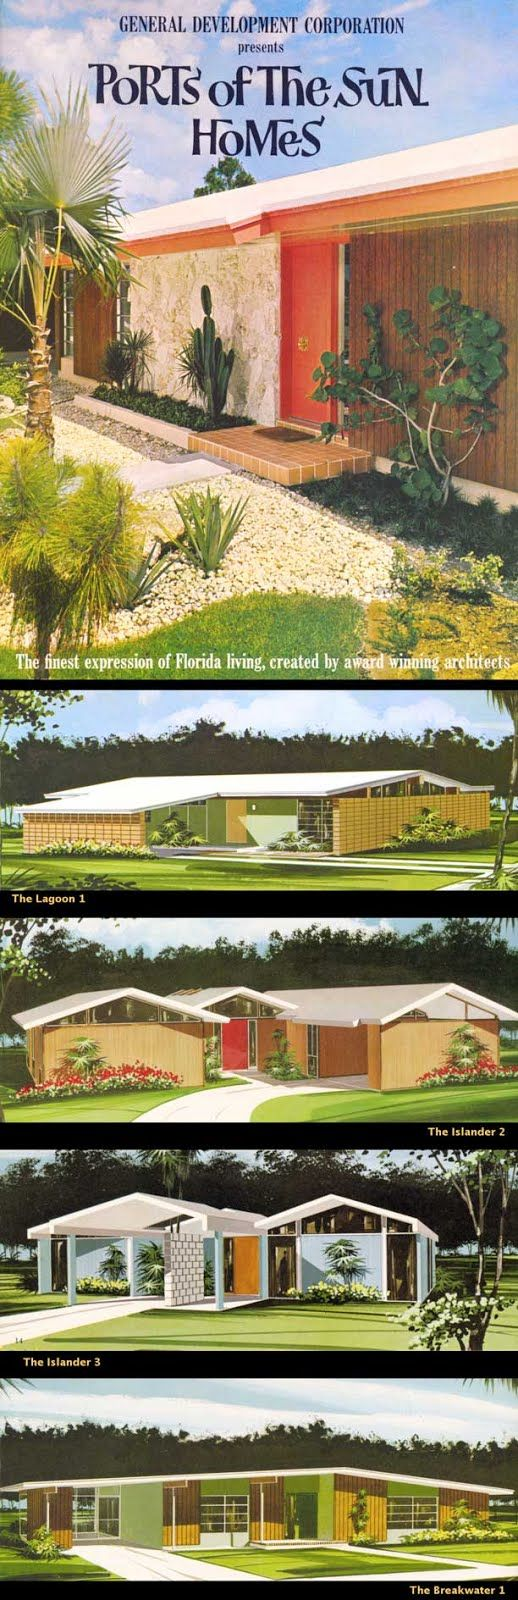 Mid century modern exterior house colors - Find This Pin And More On Atomic Ranch Renovation Ideas Mad For Mid Century Atomic Ranch Exterior Paint Colors